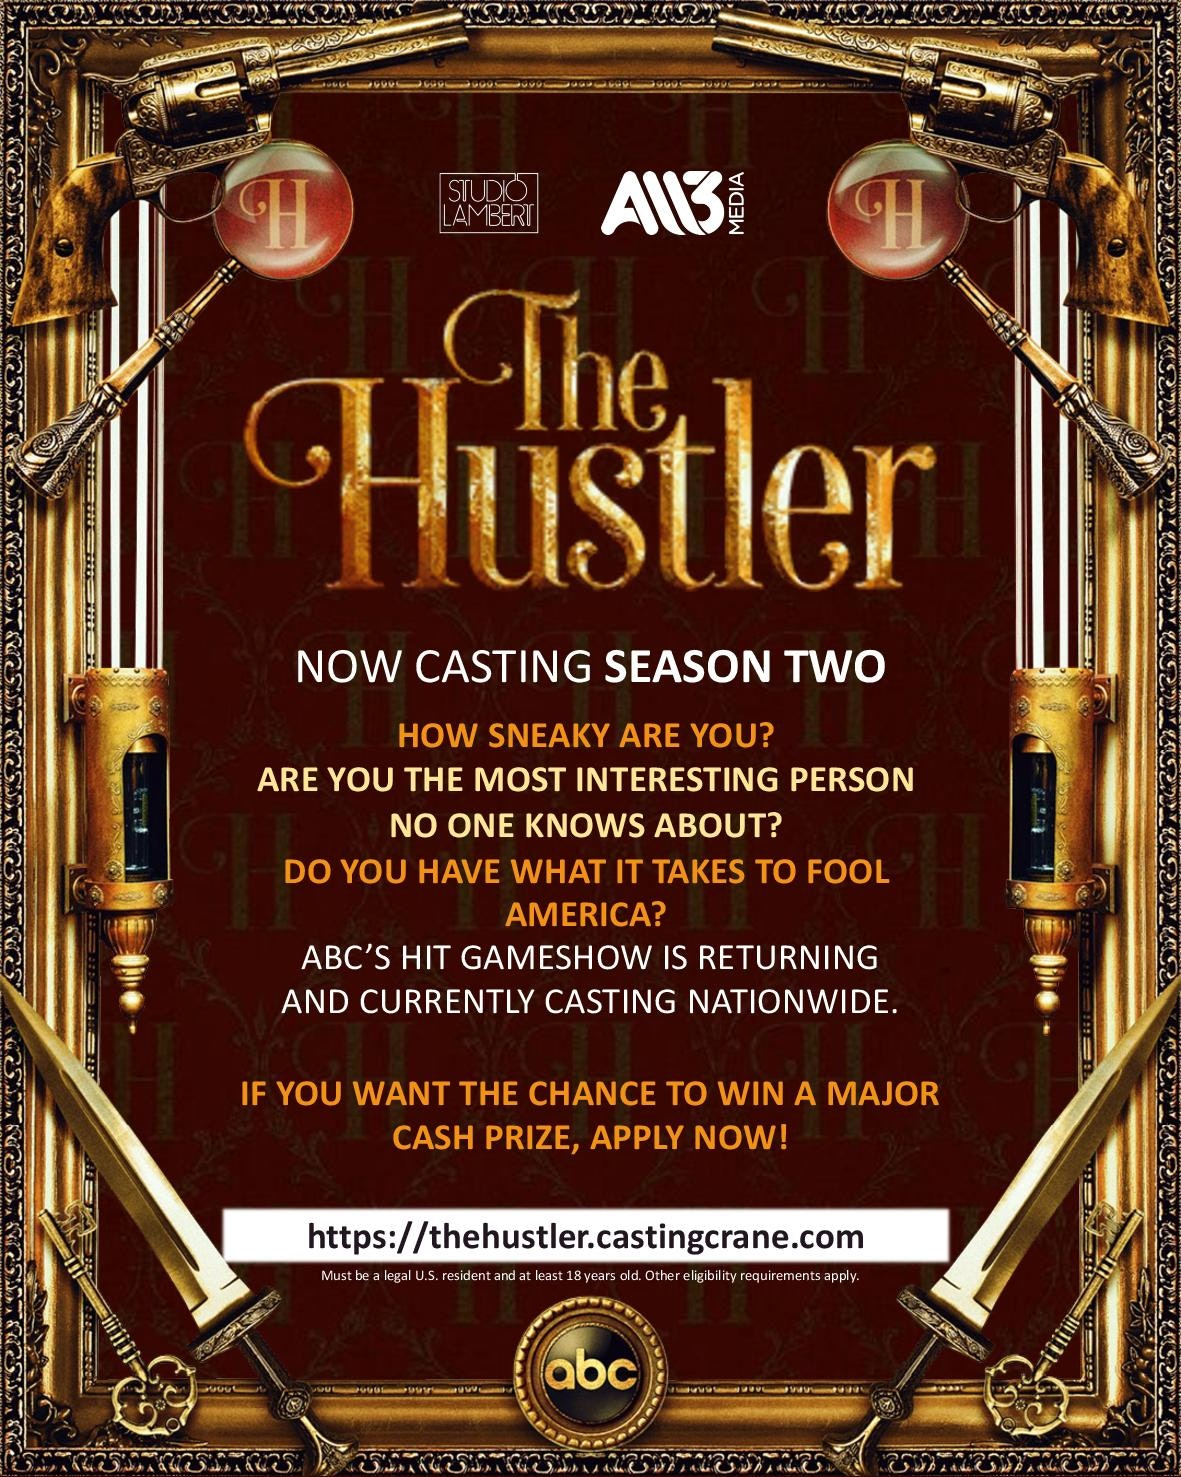 The Hustler: Season Two; ABC Game Show Renewed and Casting